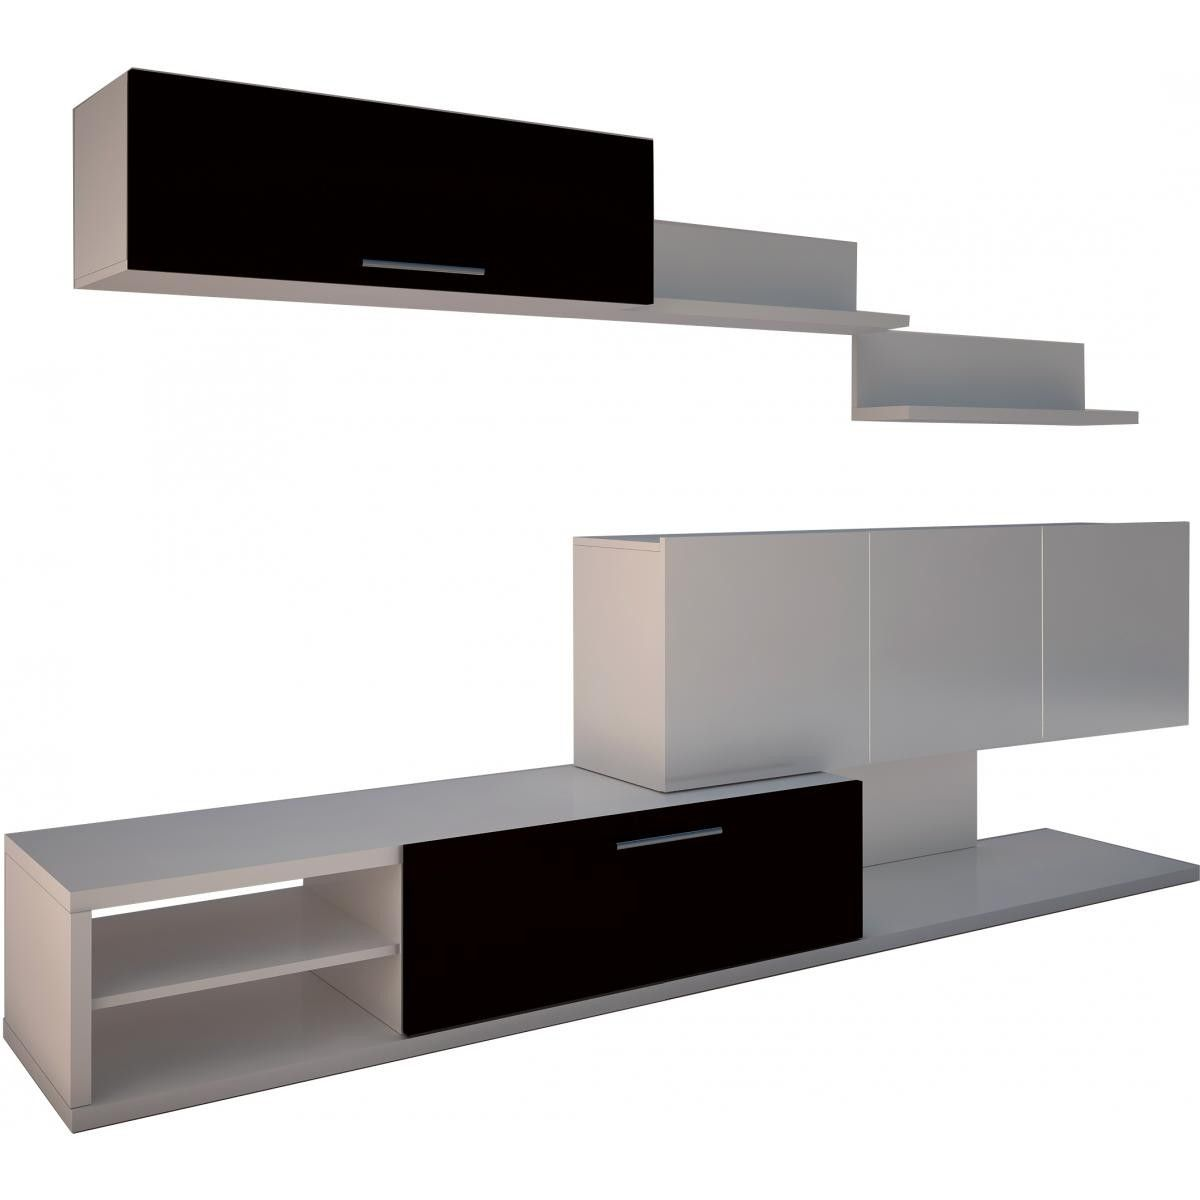 Compacto sal n roma en conforama wood art tv pinterest - Muebles salon conforama ...